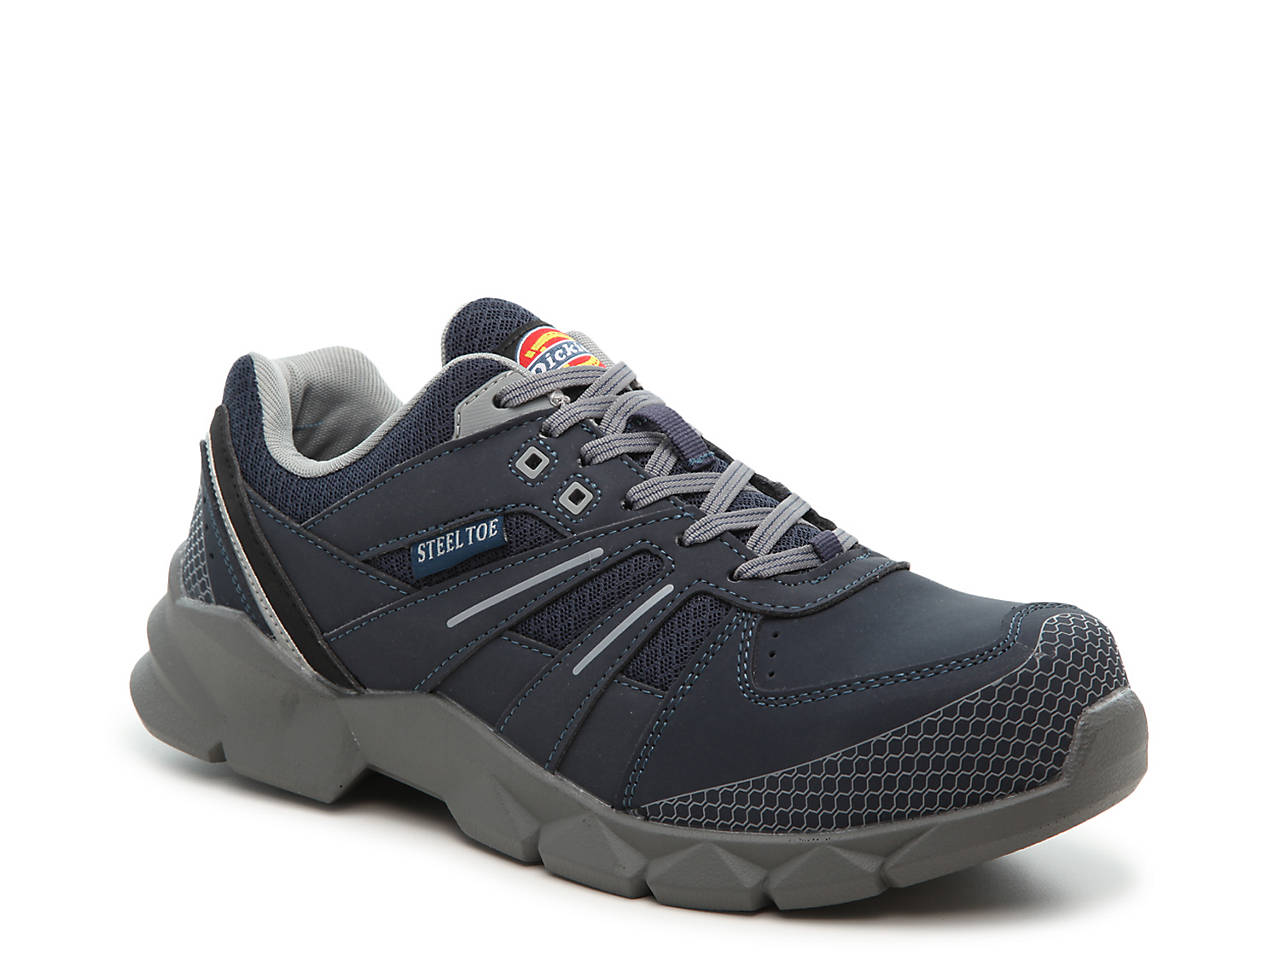 9320030502d Rook Steel Toe Work Sneaker